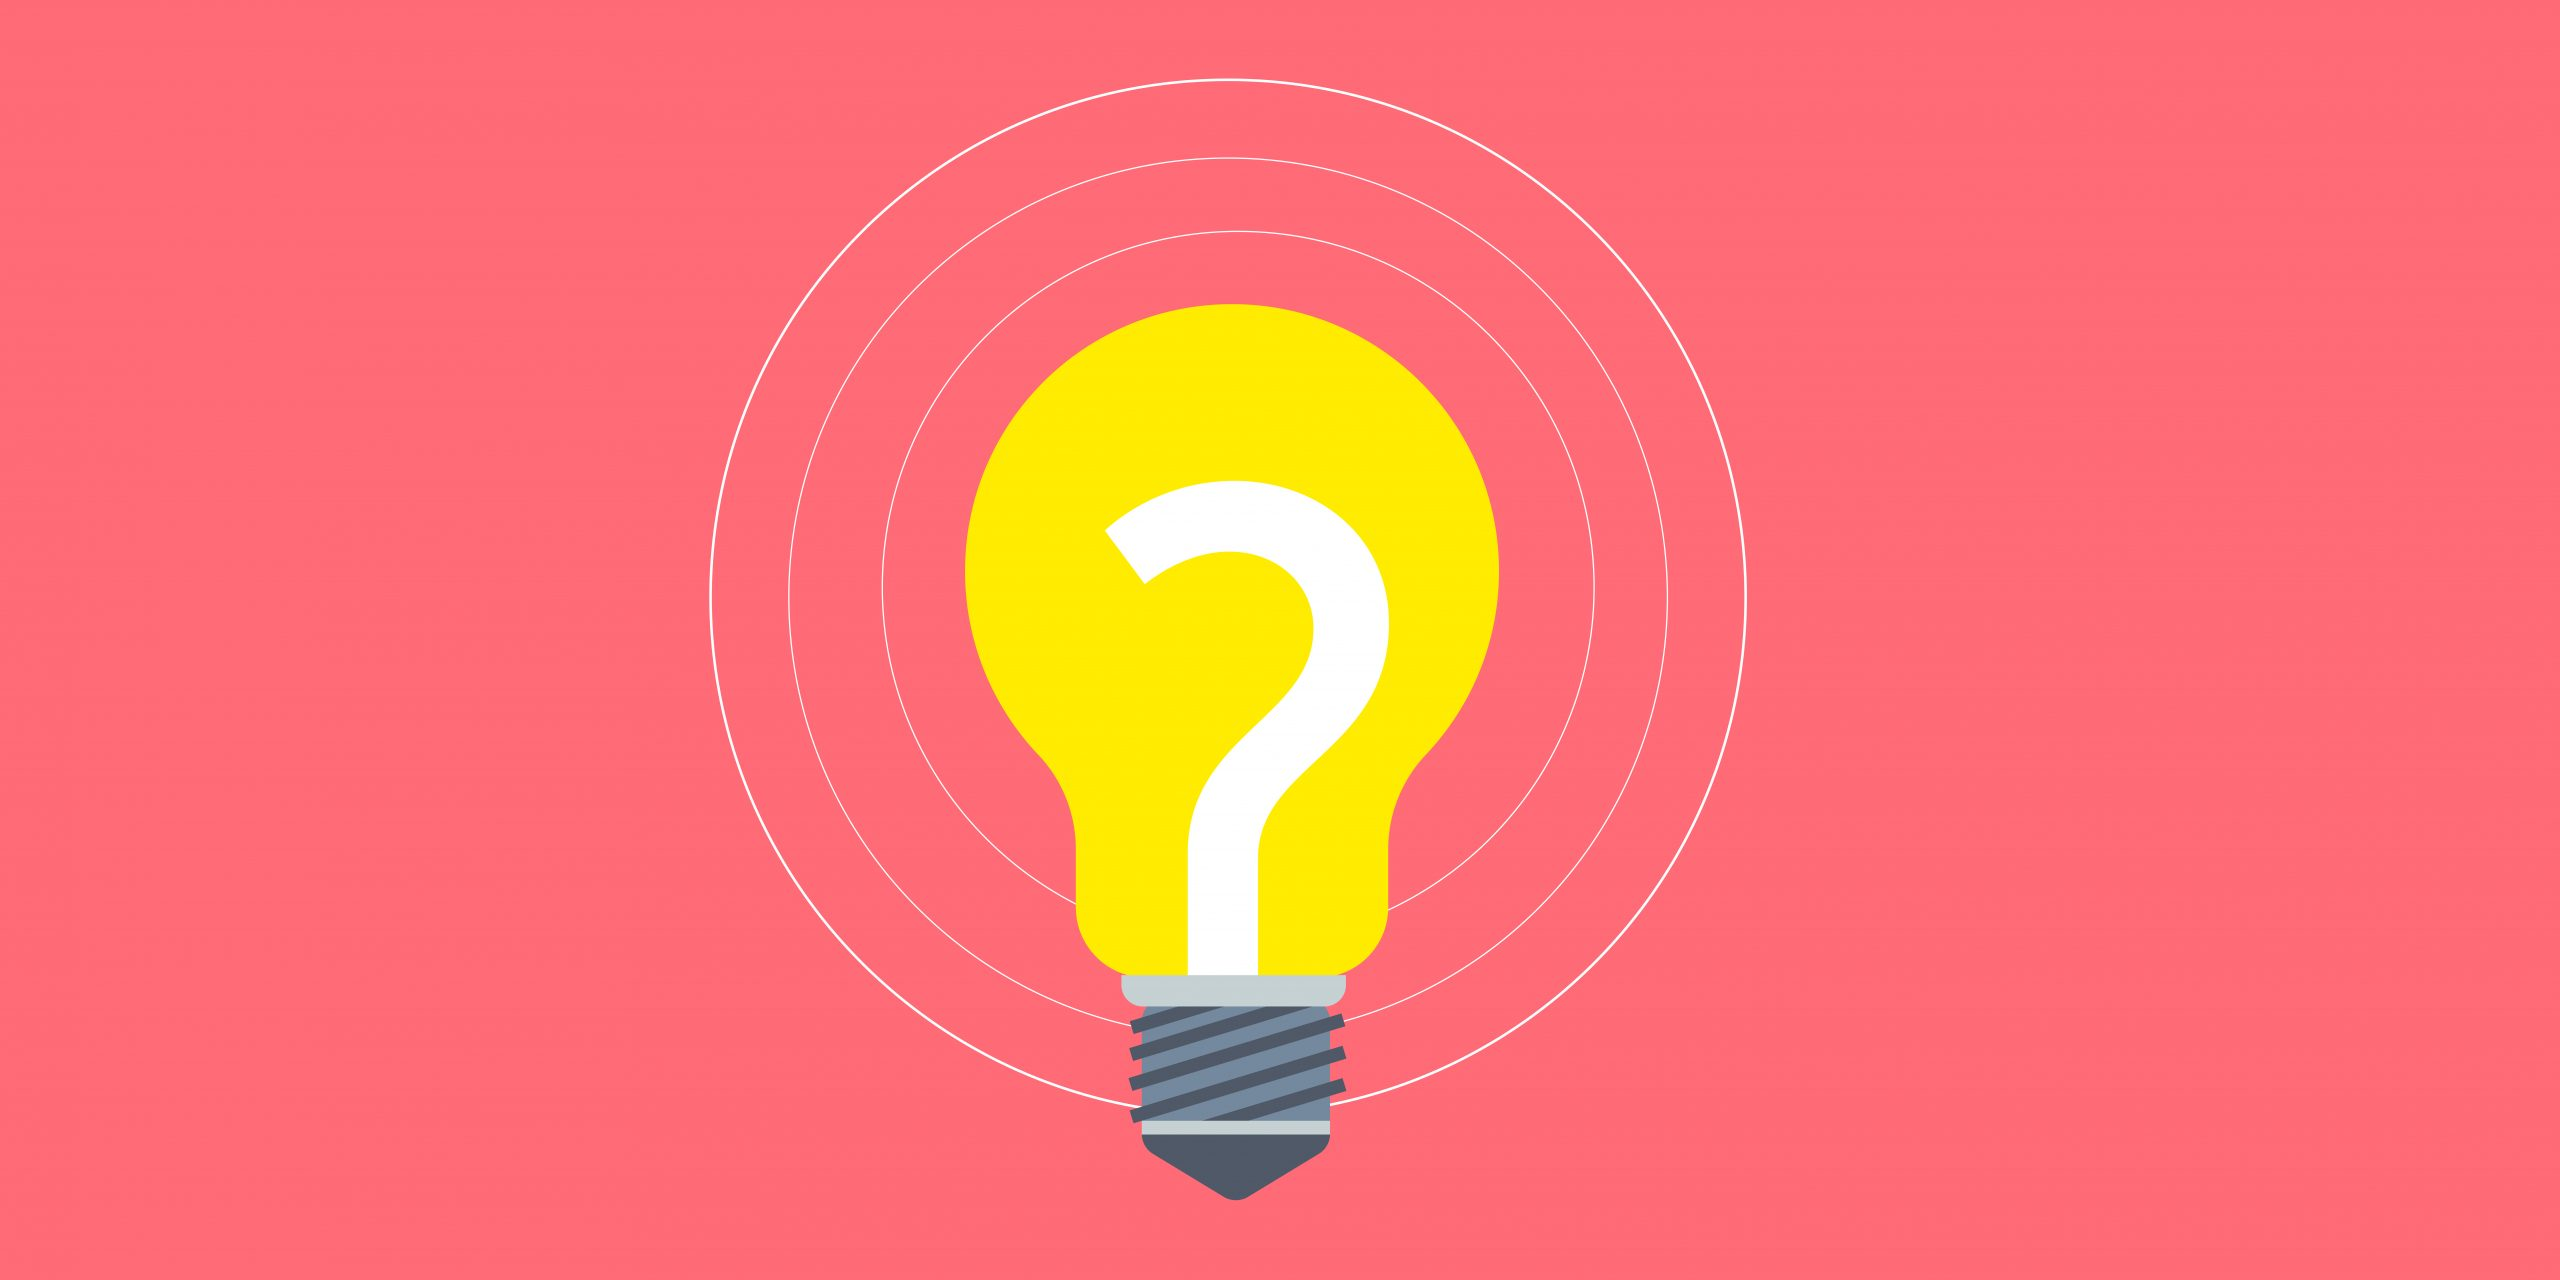 Creative ideas can pop out of nowhere. Which is really unhelpful when we're trying to complete a design job! But there are a few ways to make those ideas appear on command.